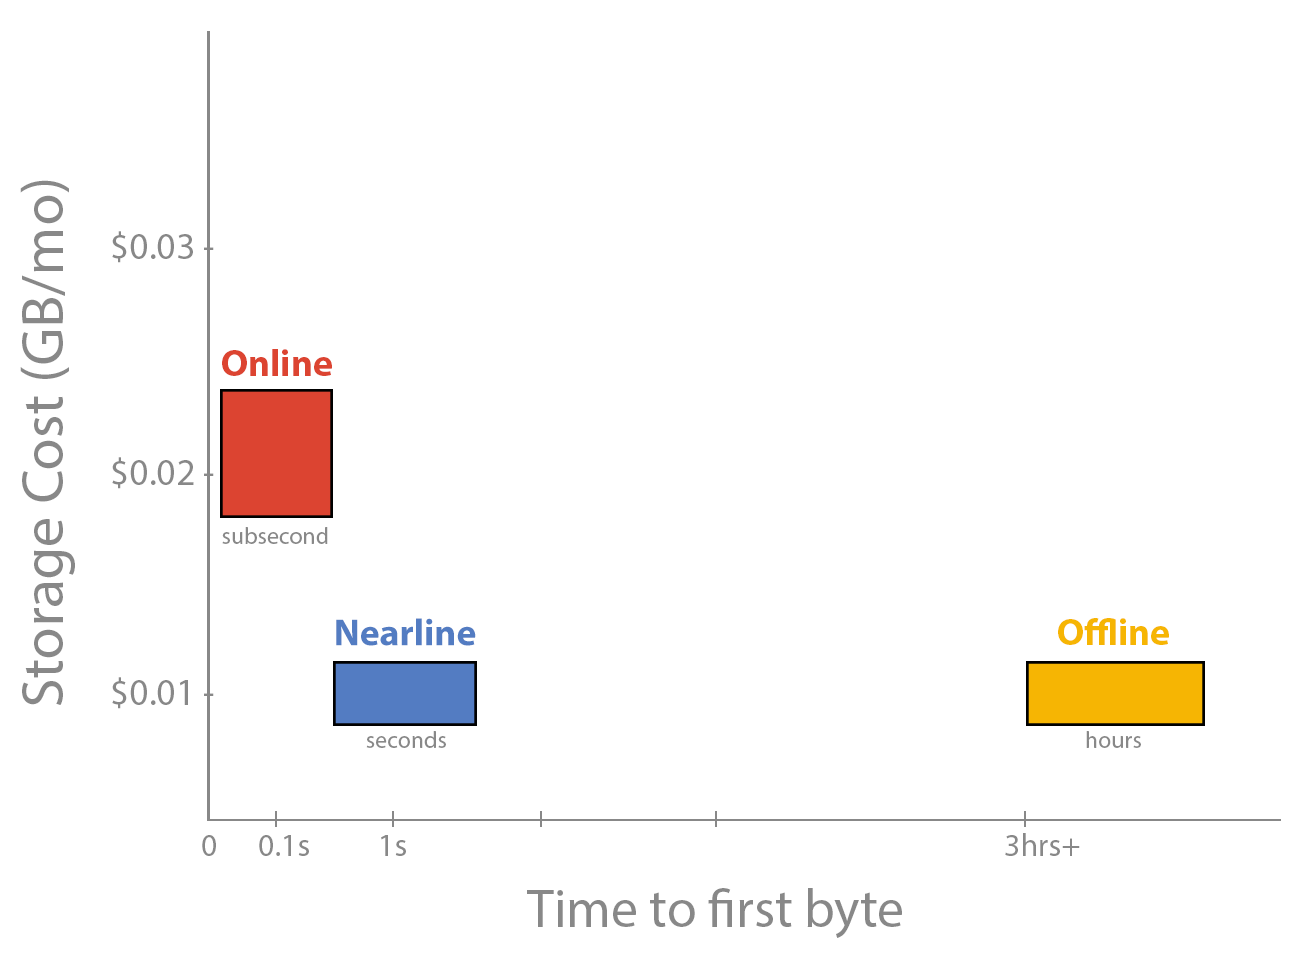 Google Nearline access times comparison